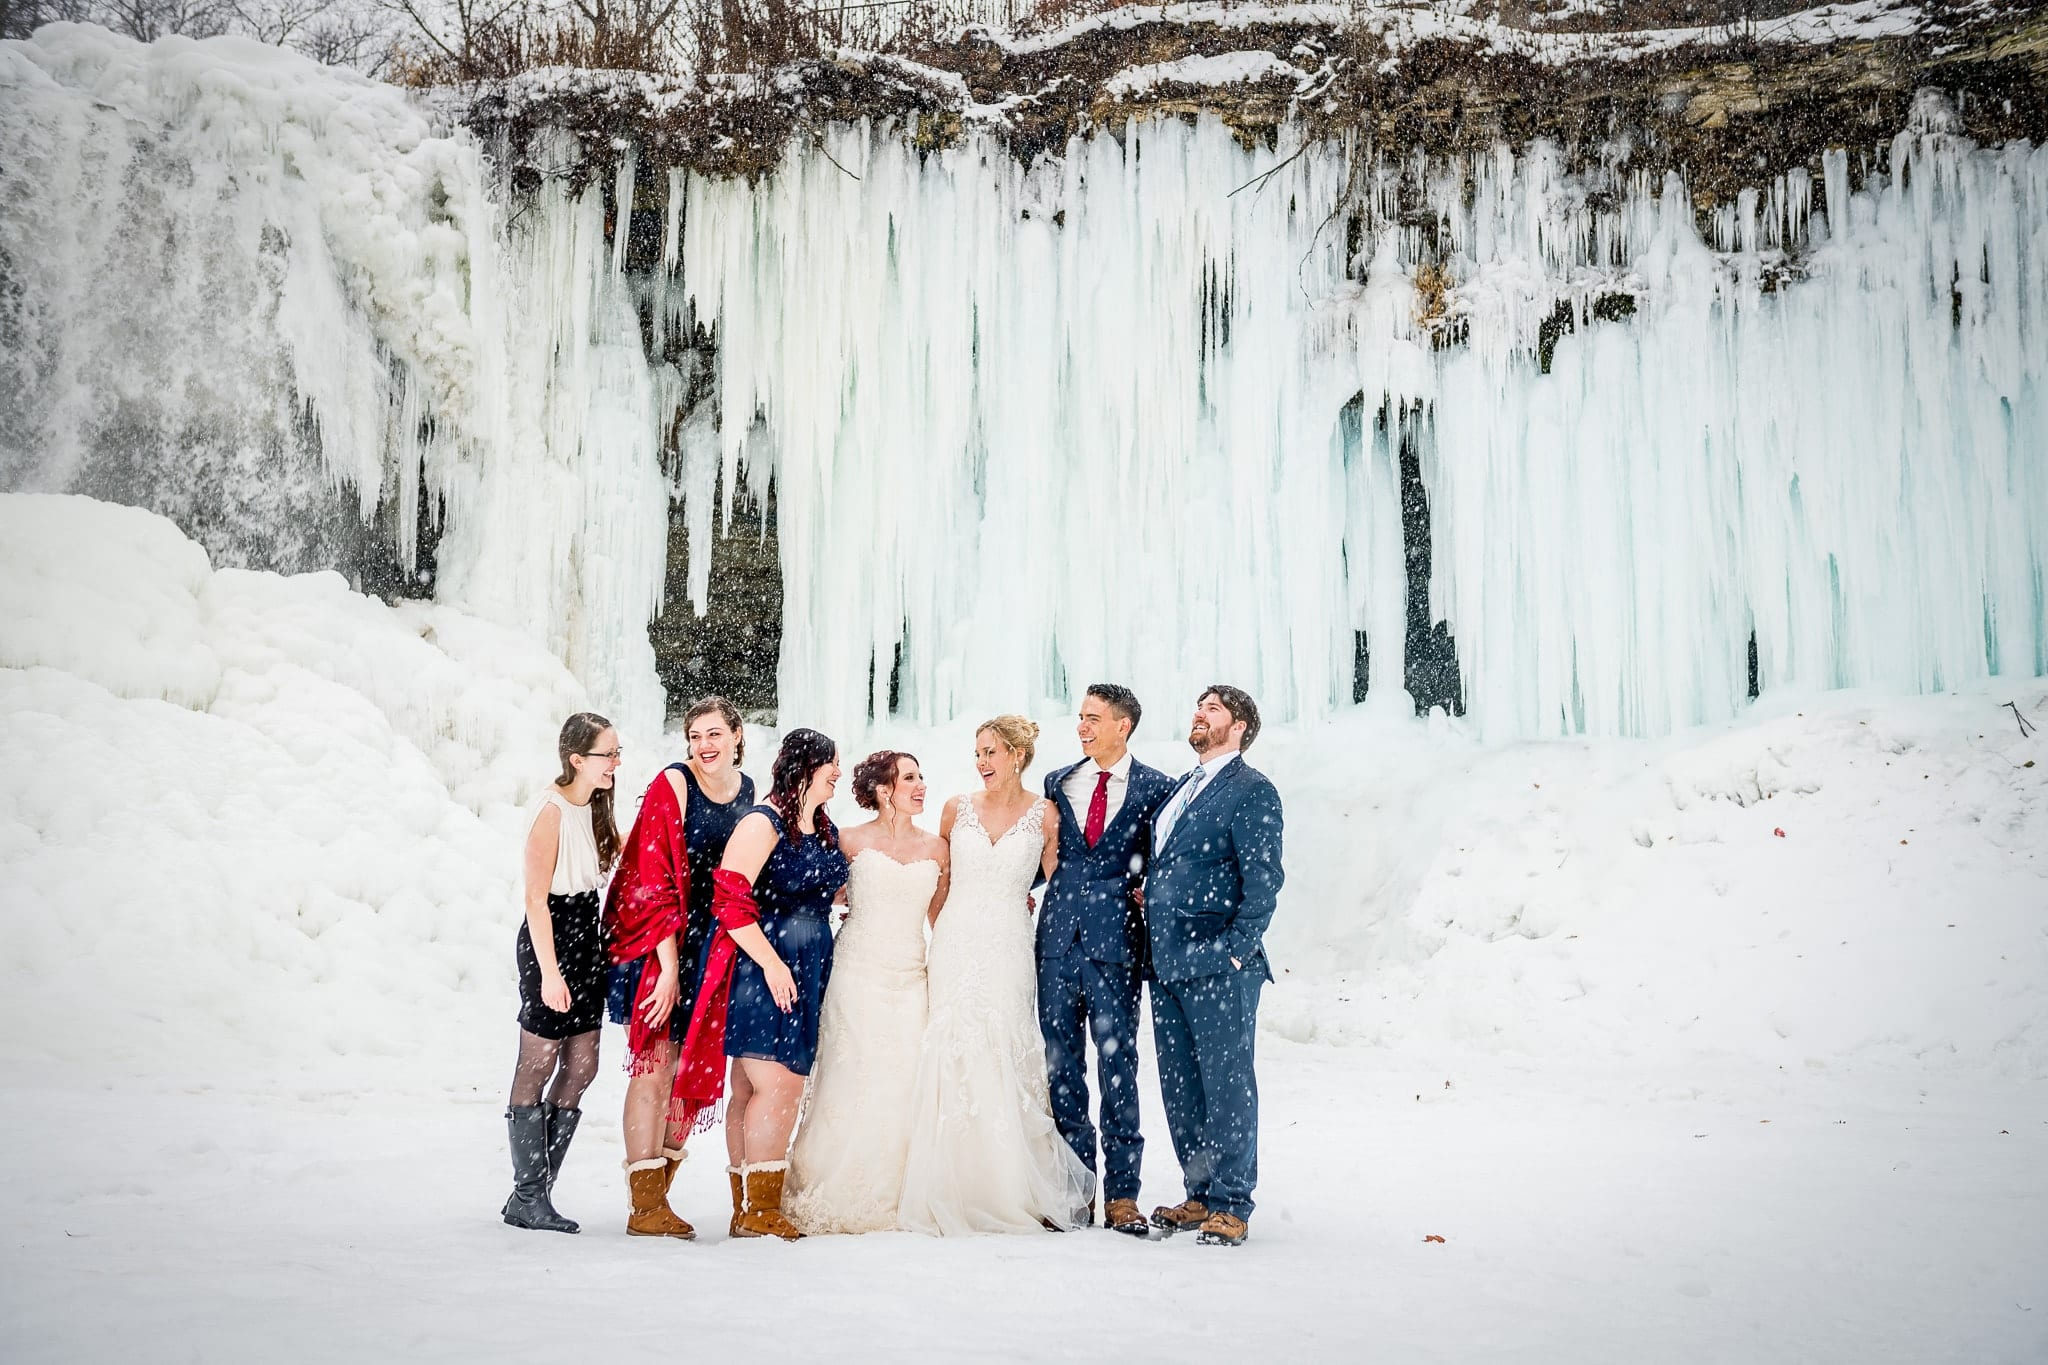 Bridal party in a winter snowfall at Minnehaha Falls on Minneapolis